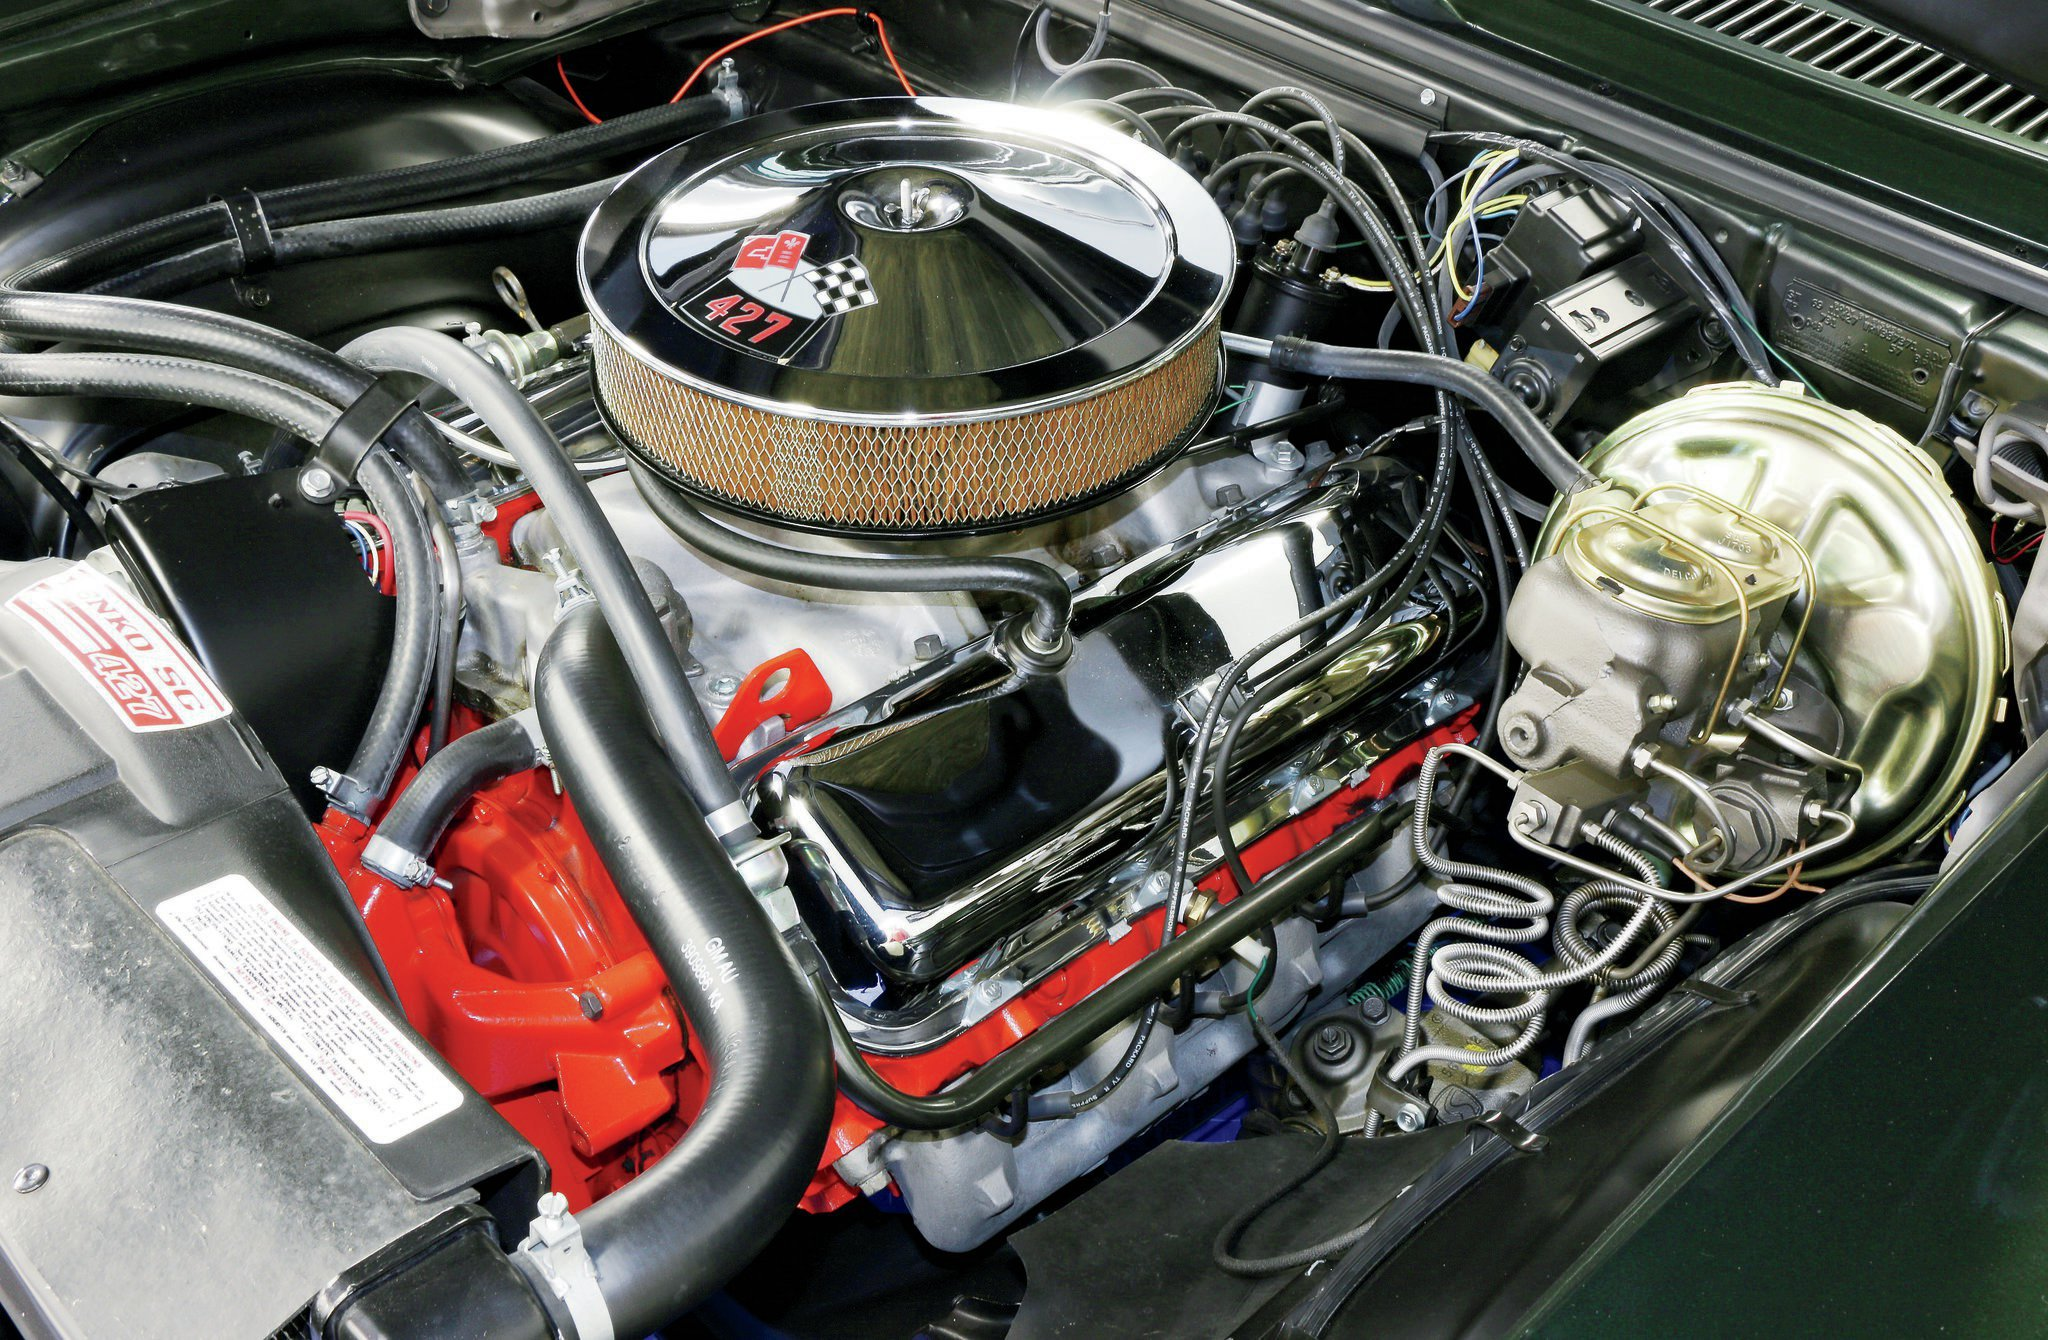 As they did with the 1968 Camaros, Yenko's technicians pulled the L78 396 out of the Novas and transplanted a 427 short-block, to which they reinstalled the L78's heads, intake, and carburetor. A Yenko tune then brought power up to a rated 450 hp.